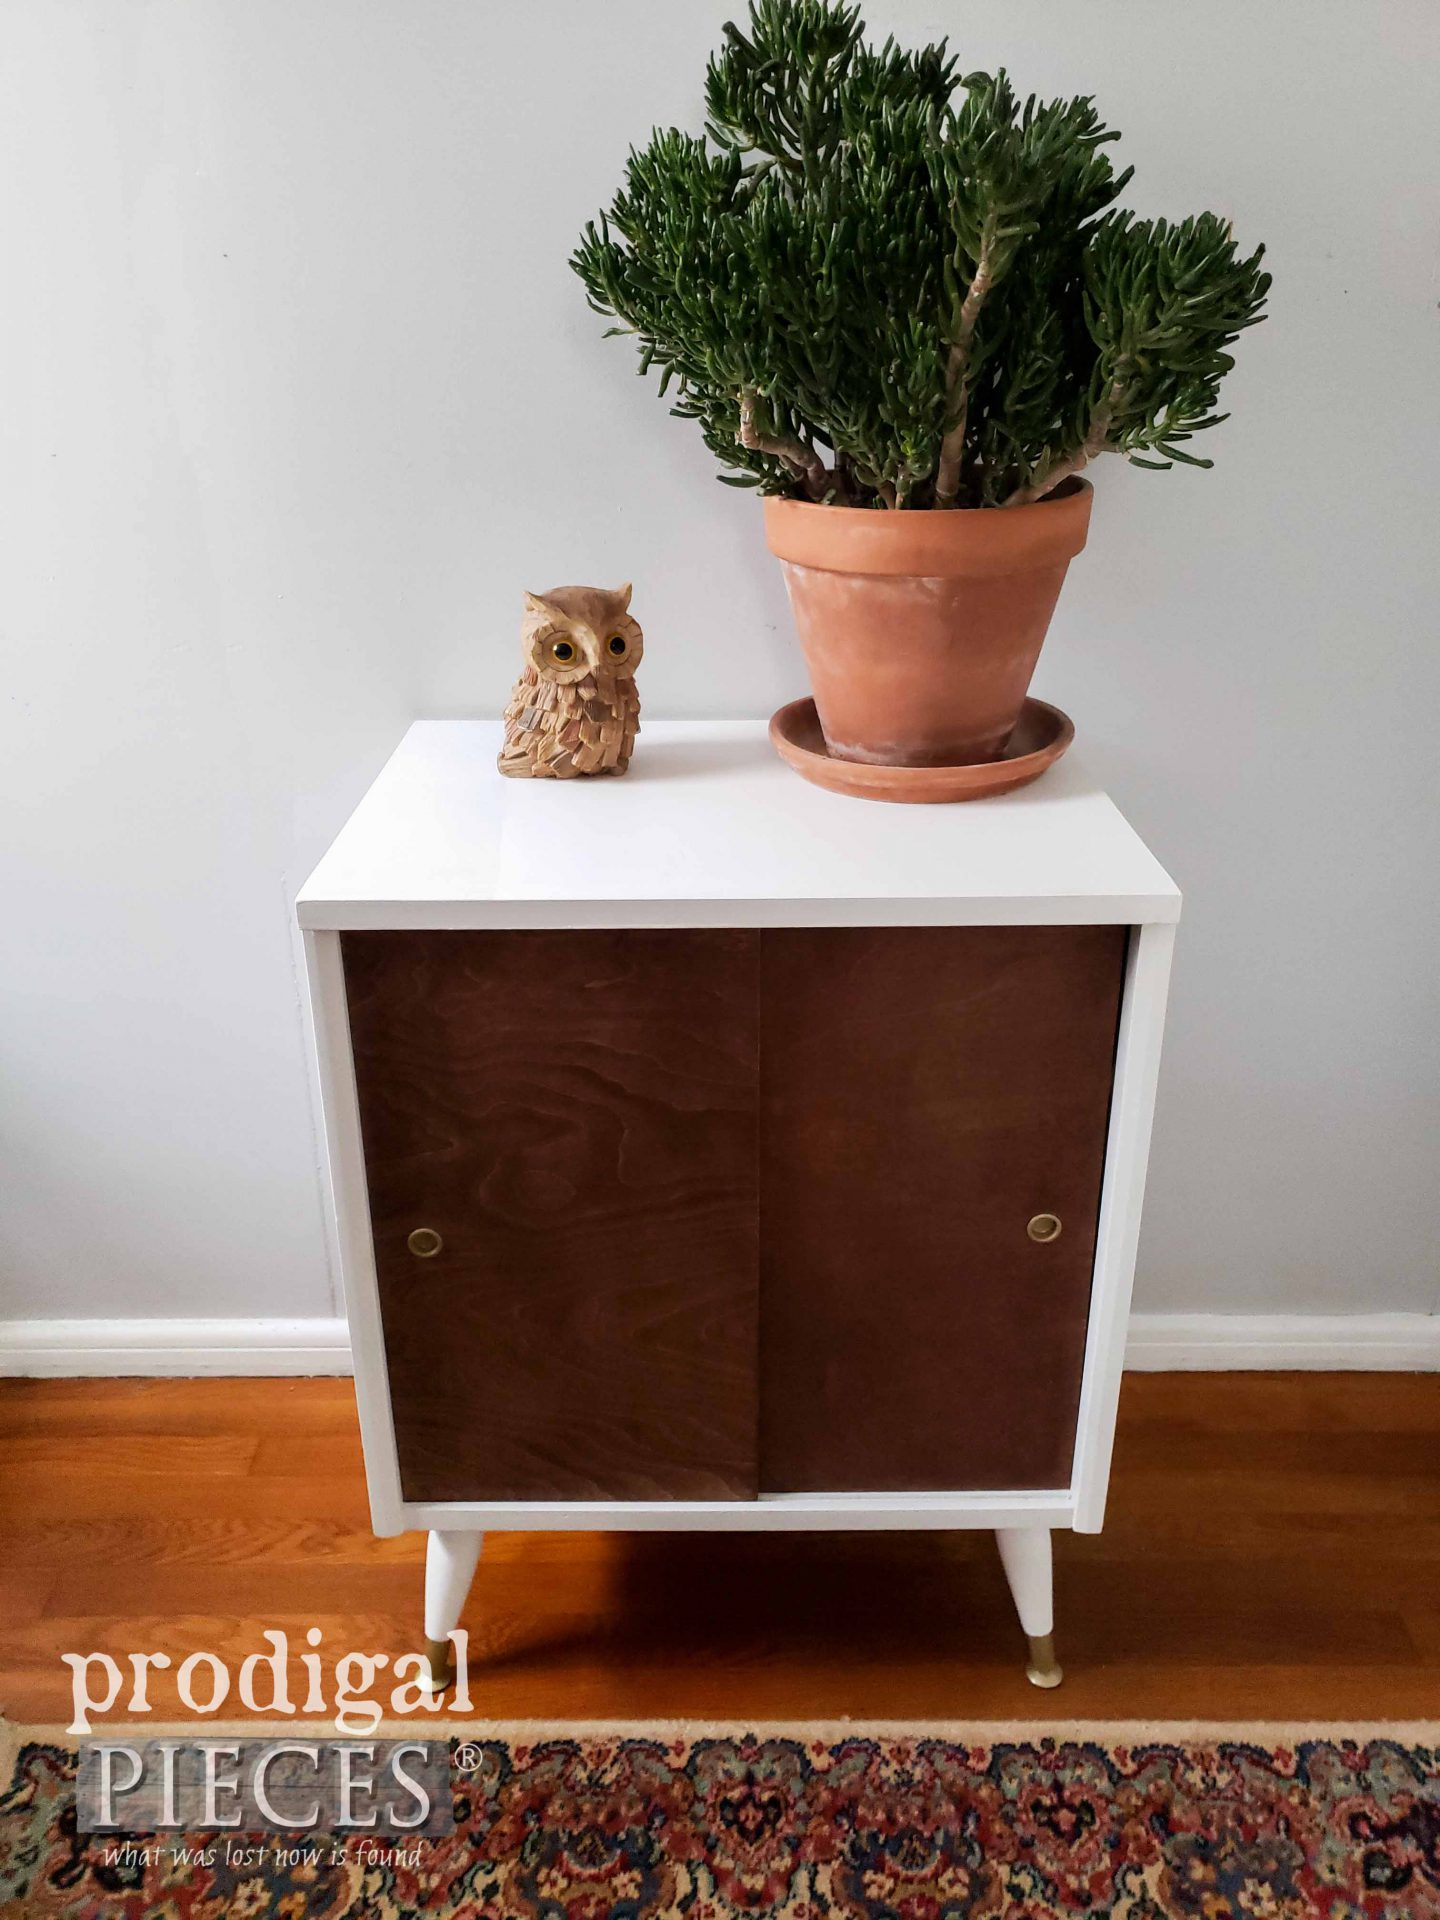 White & Stained Wood Mid Century Modern Stand | prodigalpieces.com #prodigalpieces #furniture #diy #home #homedecor #boho #modern #midcentury